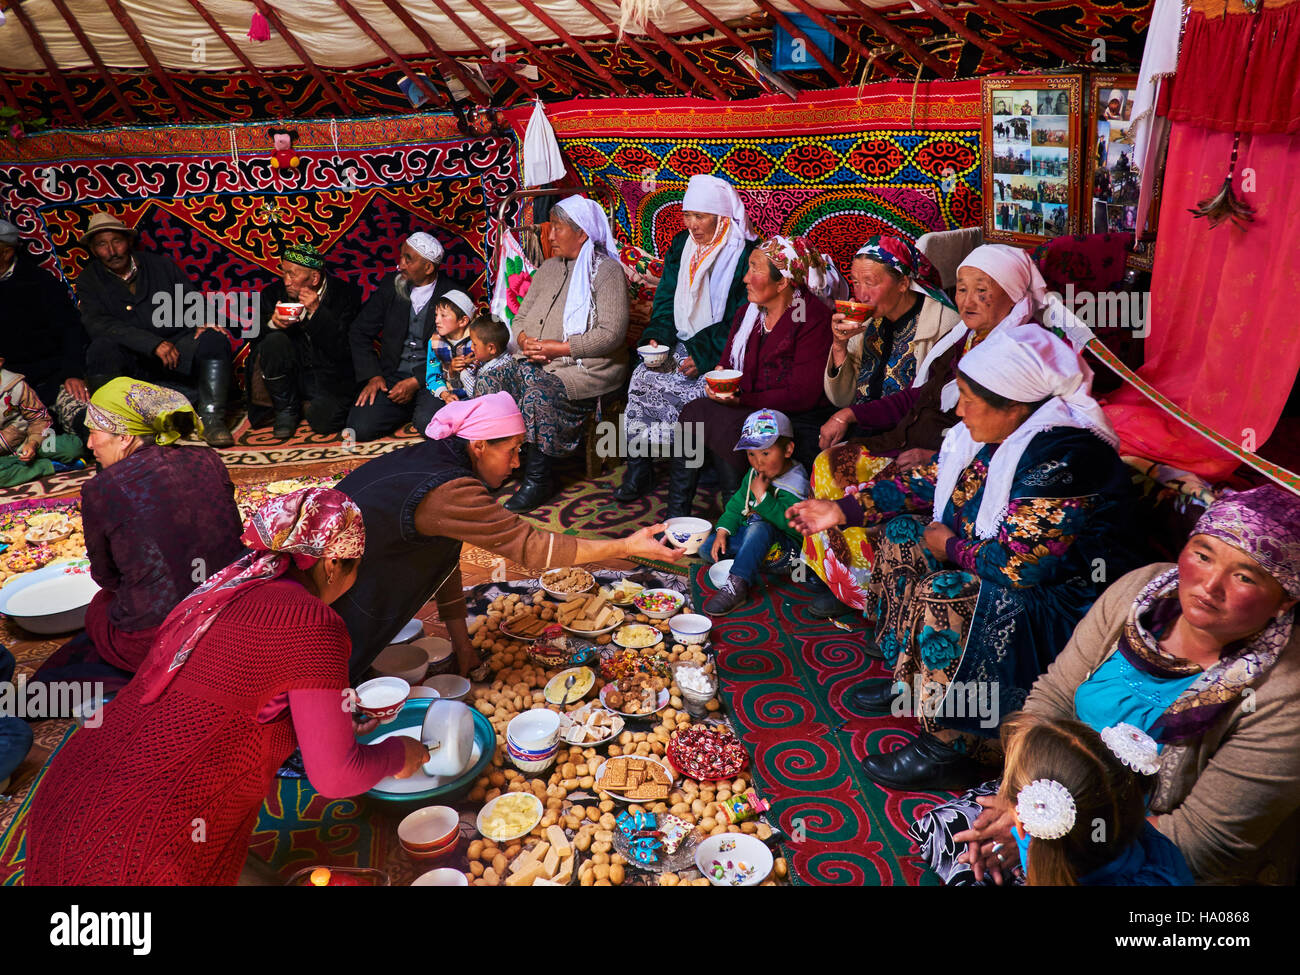 Mongolia, Bayan-Ulgii province, western Mongolia, nomad camp of Kazakh people in the steppe, festival inside the - Stock Image